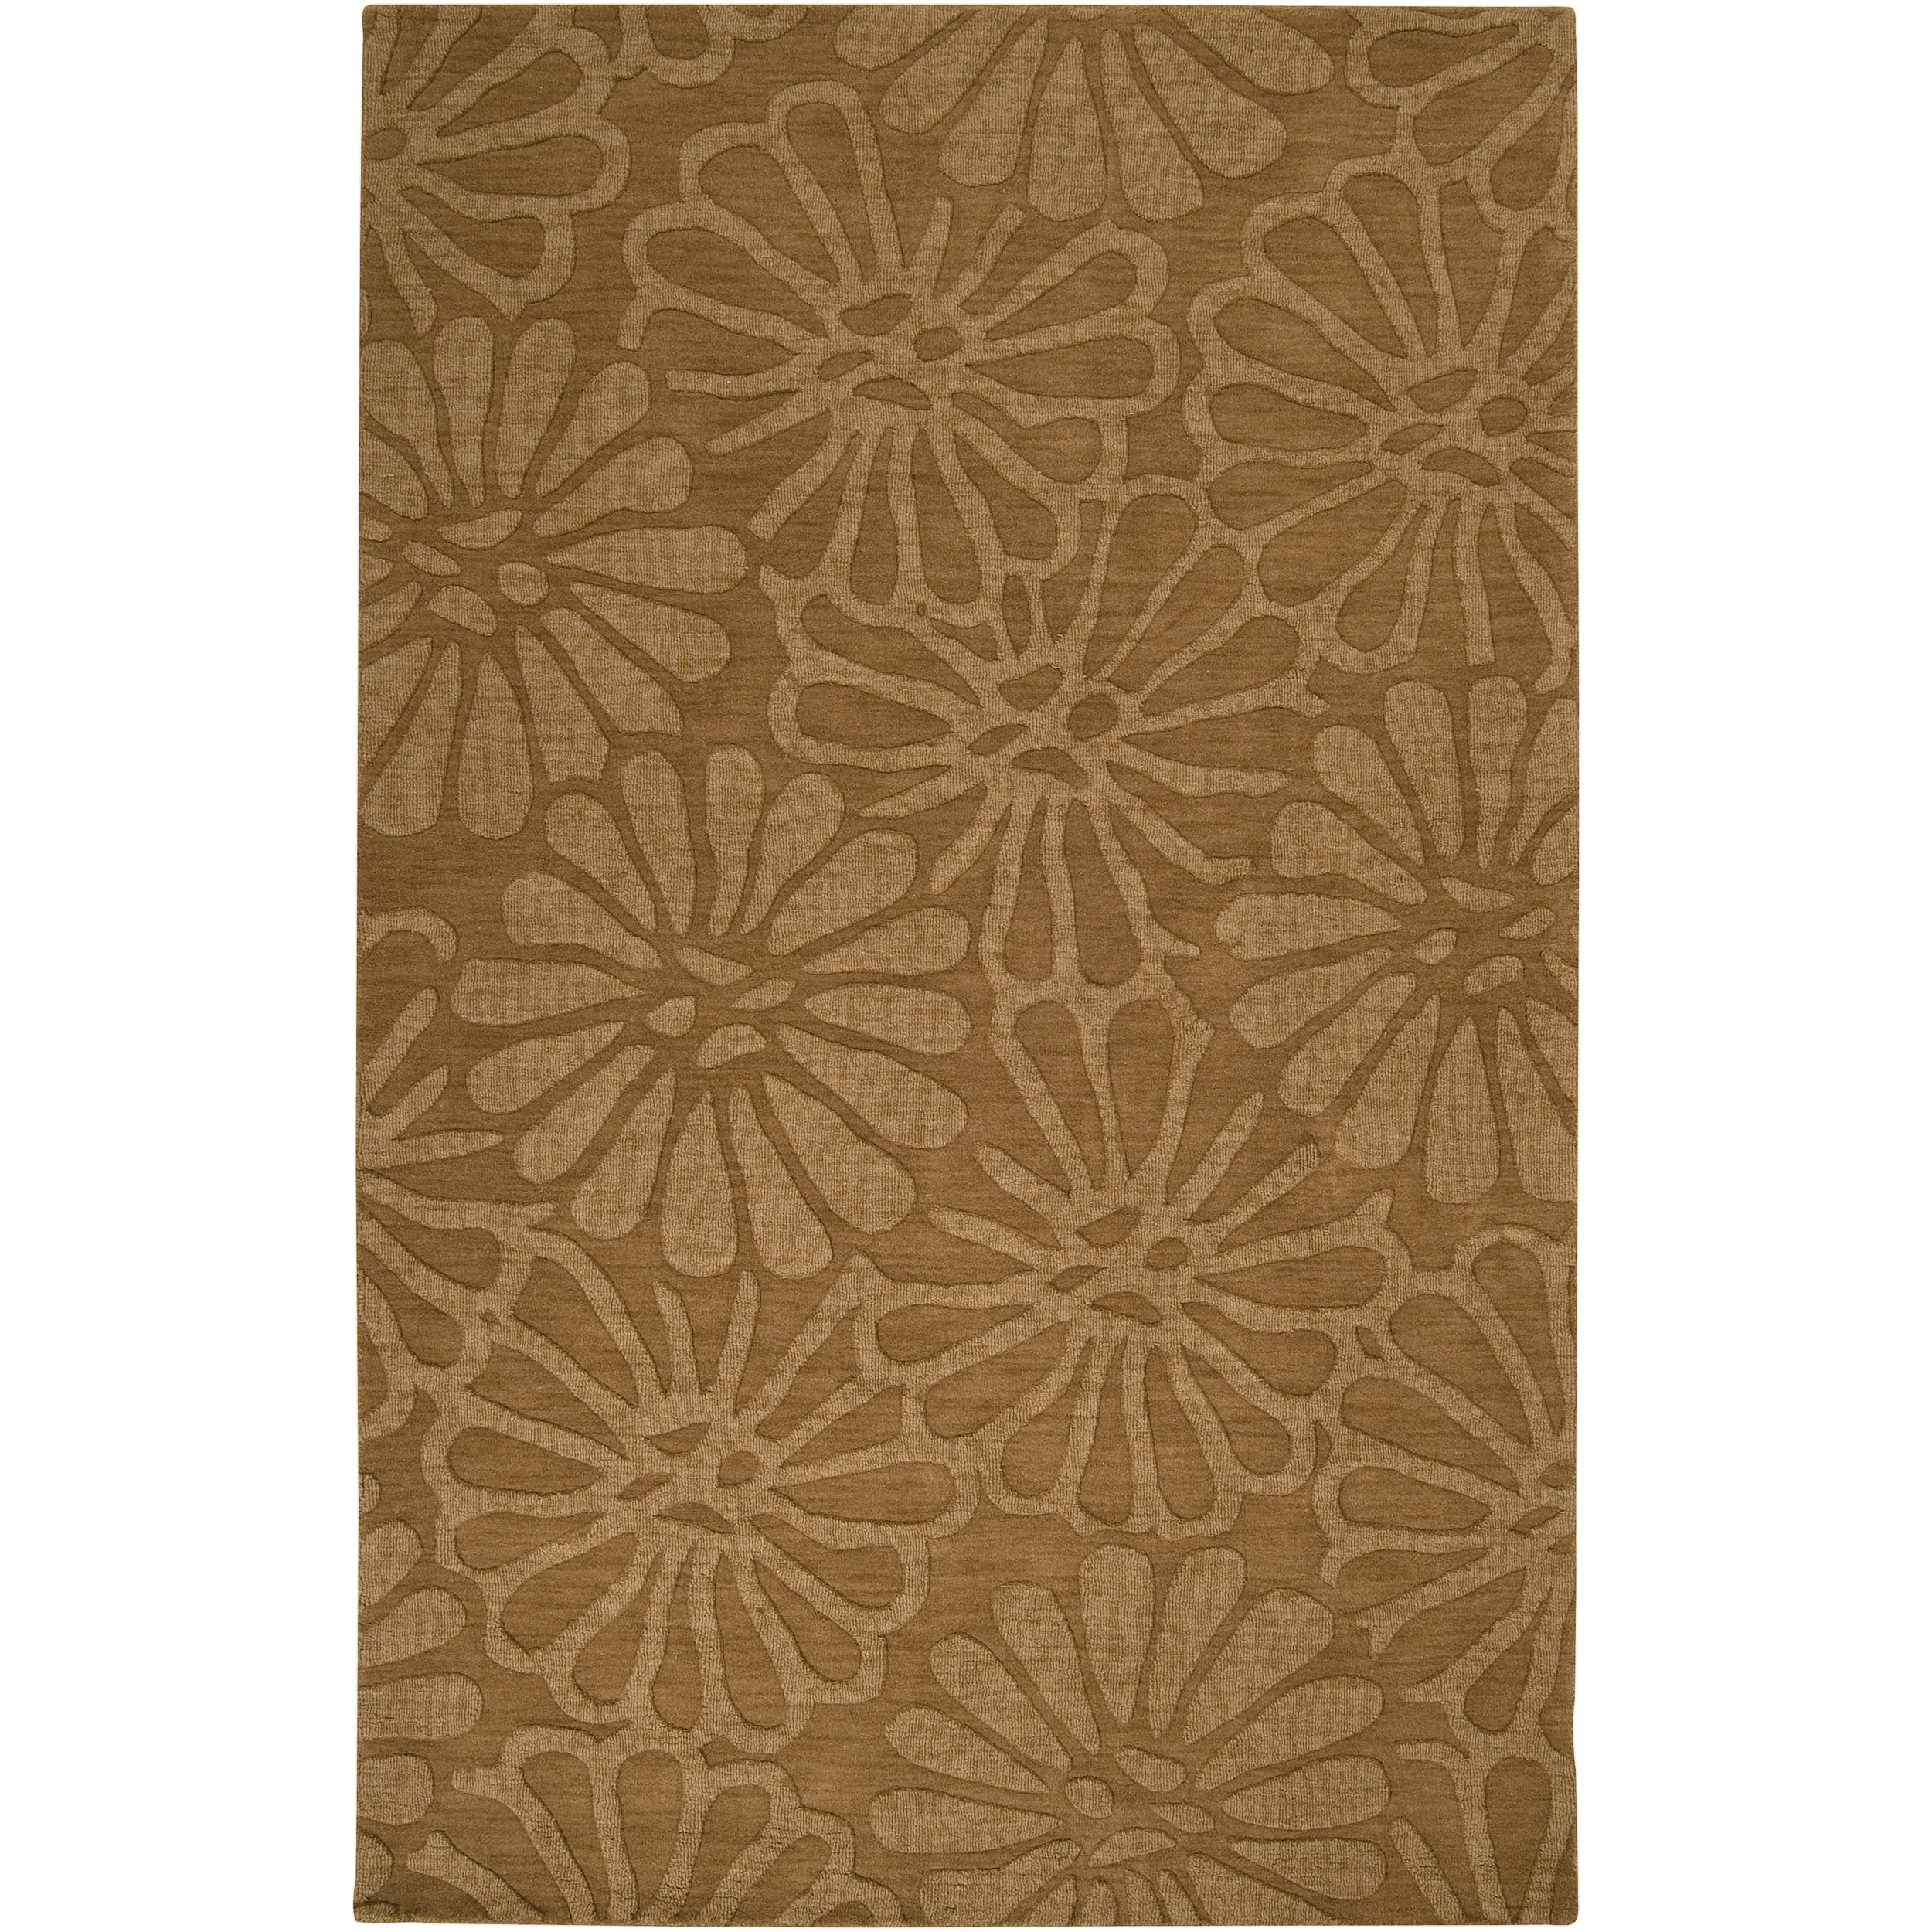 Hand-crafted Solid Beige Floral Haraz Wool Rug (5' x 8')